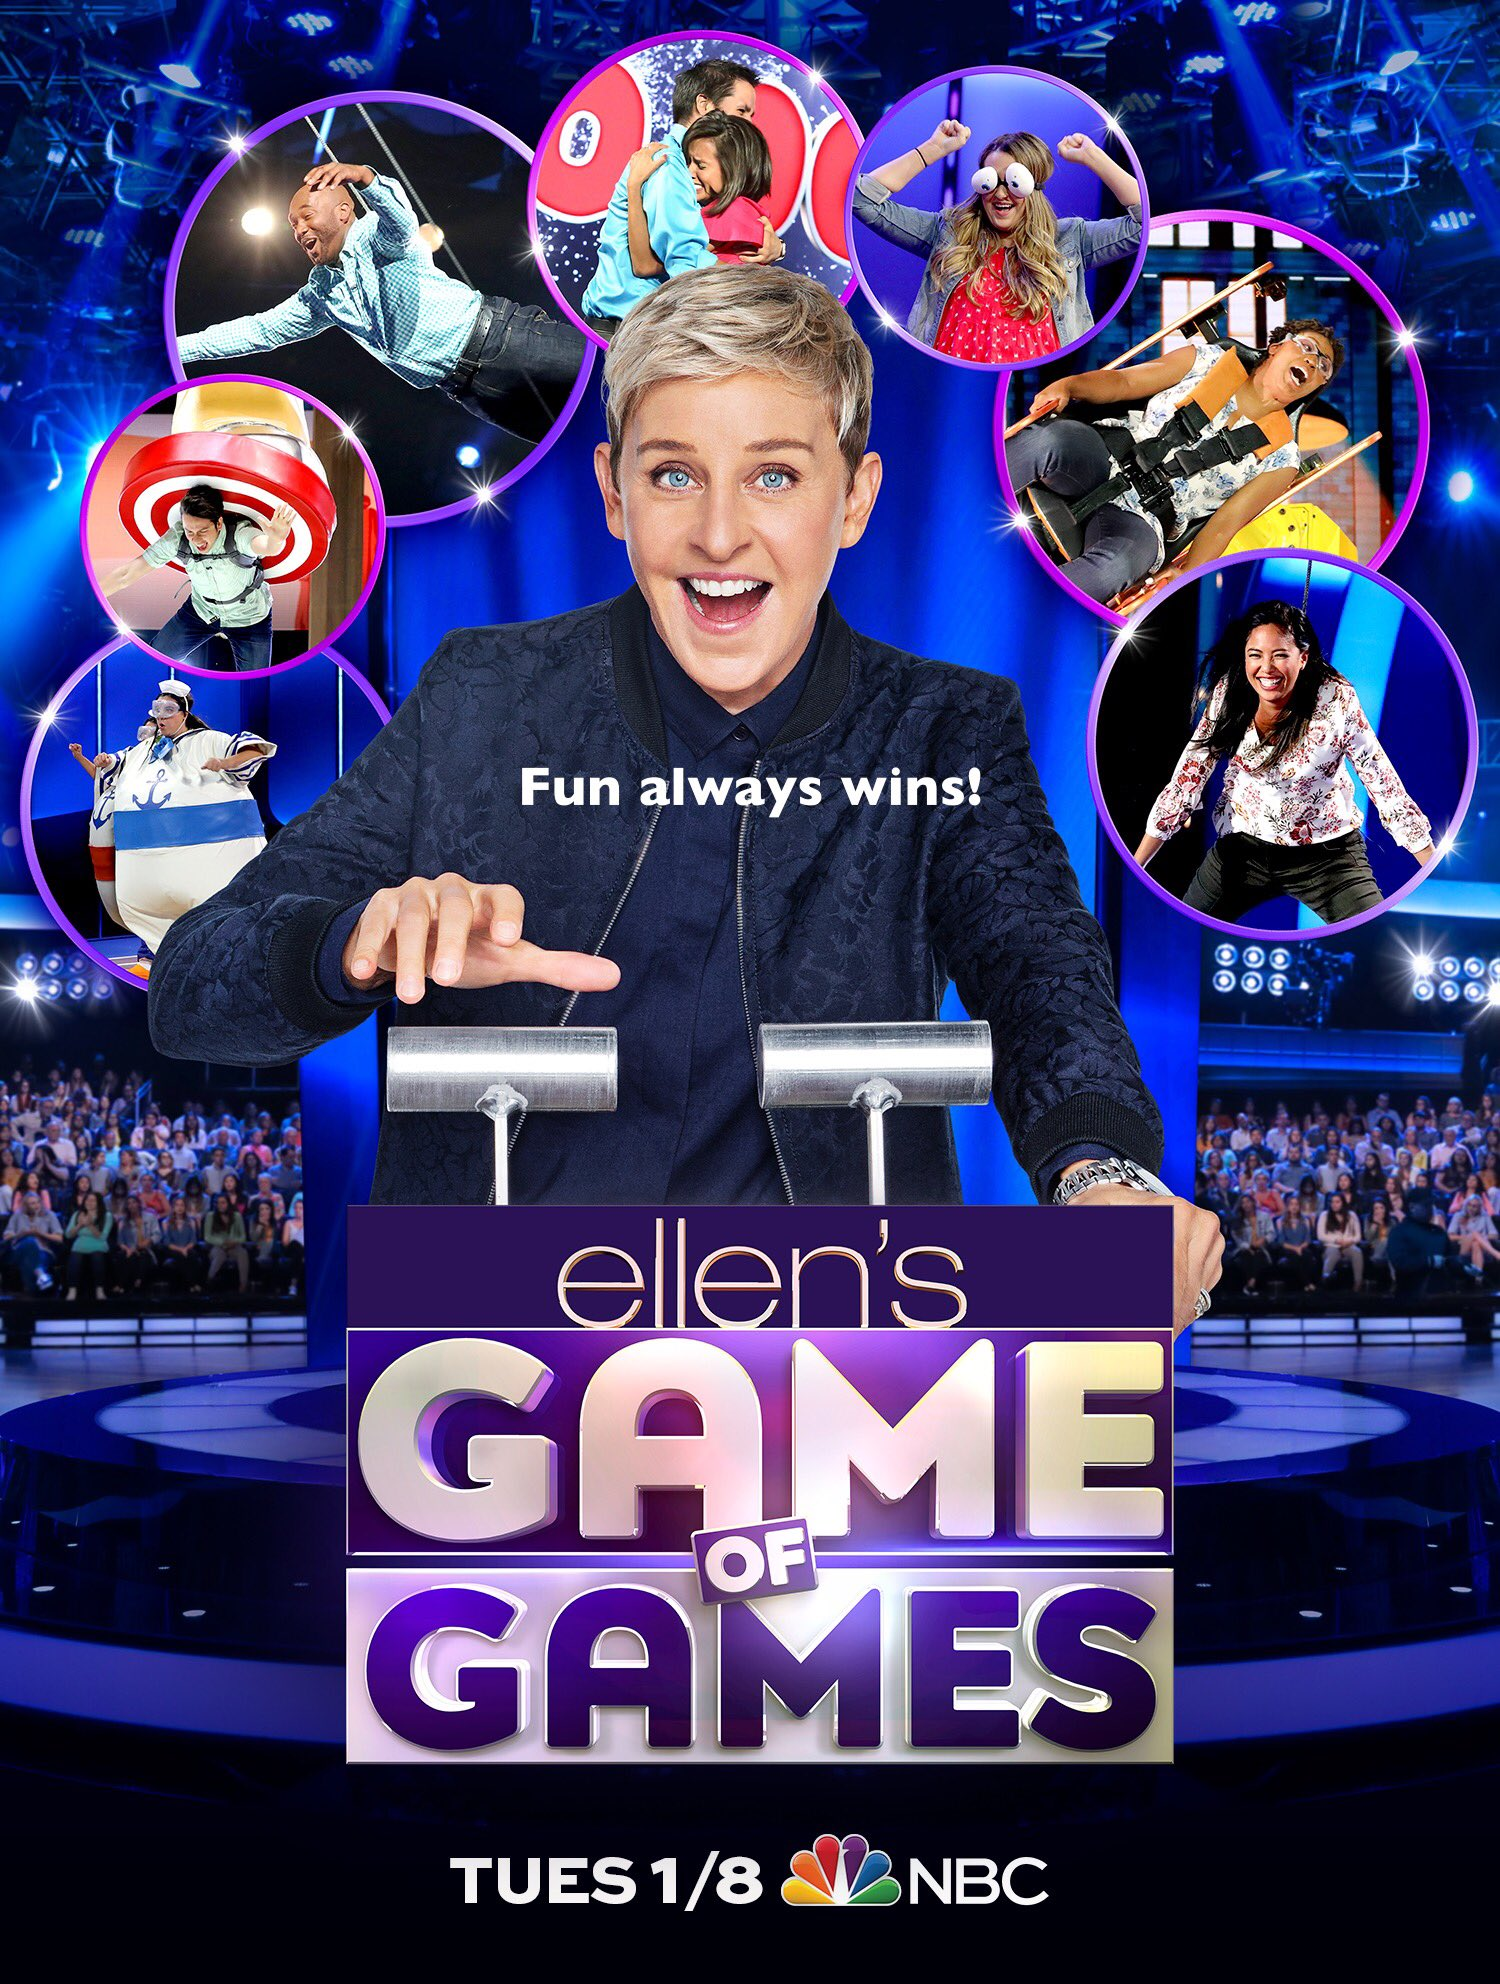 Who's ready to kick off 2019 right? #GameofGames is one week away! https://t.co/6rZOGahLIe